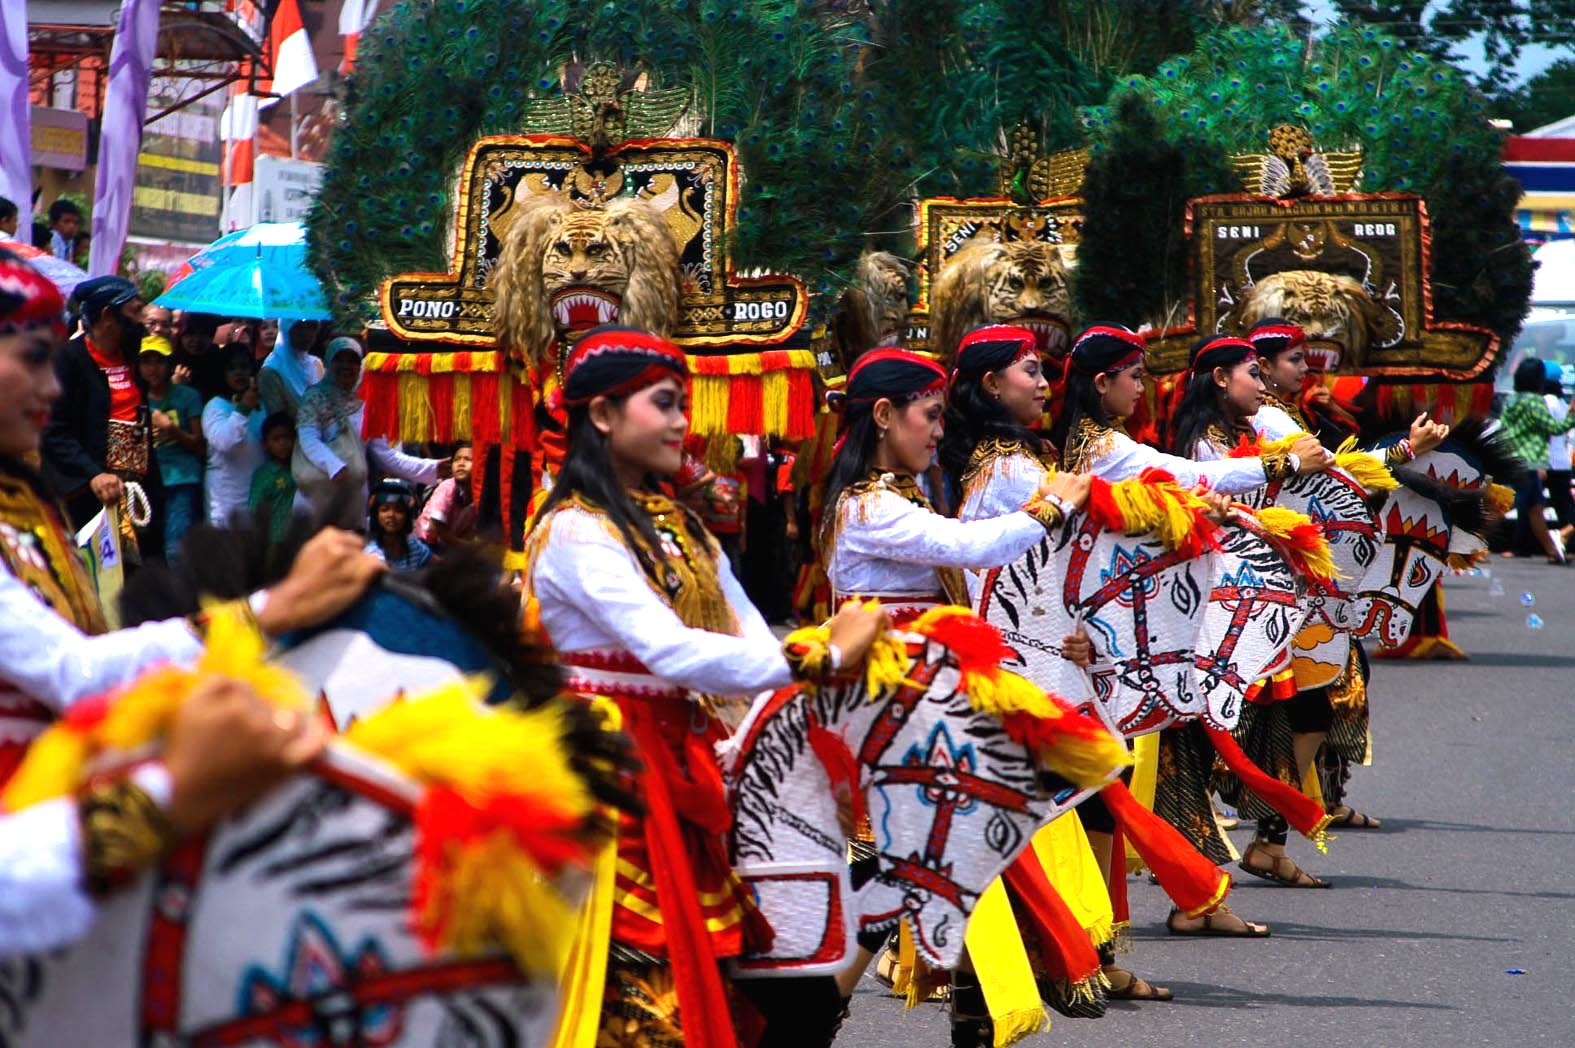 Reog Ponorogo Indonesian Culture and Tradition  Travel Guide